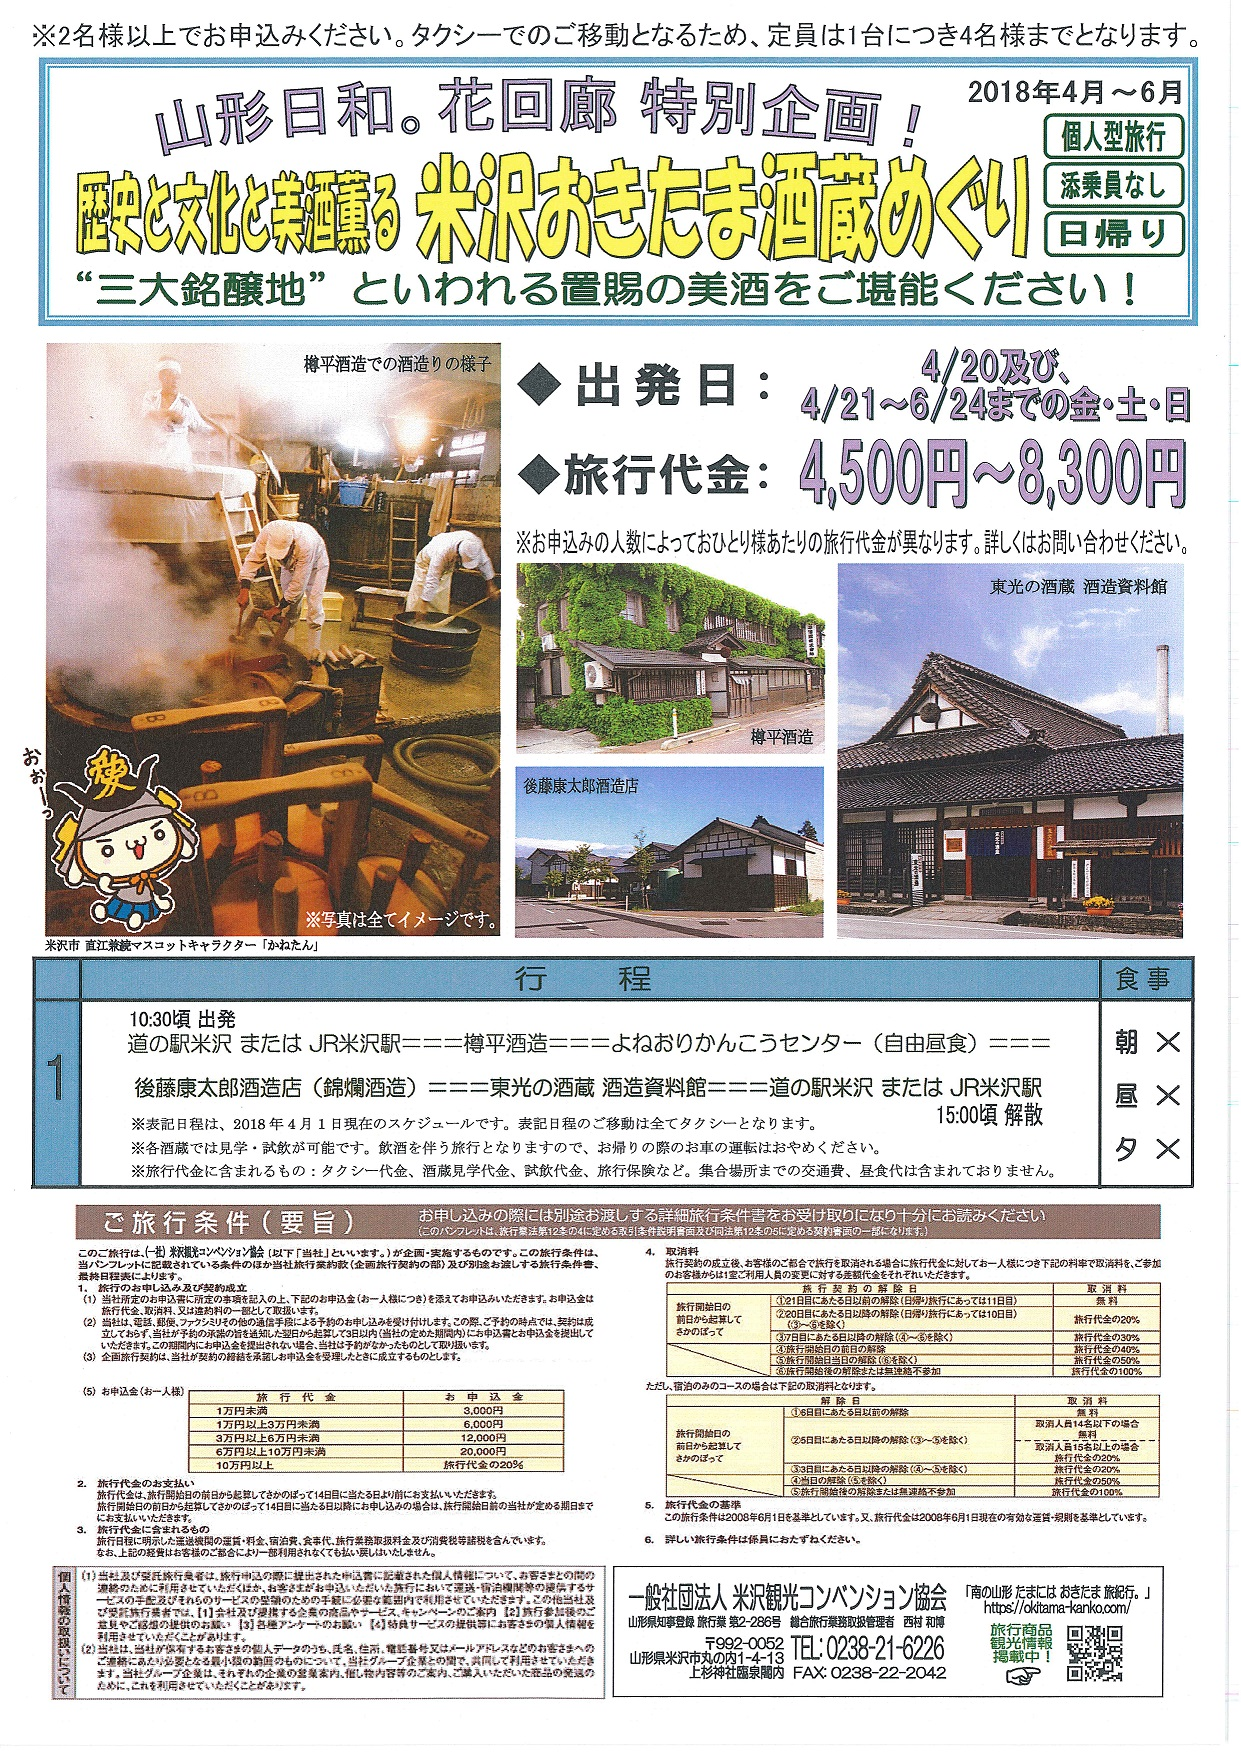 "Taxi plan! ""The history and culture and excellent sake visiting Yonezawa Okitama sake breweries full:"" Image"